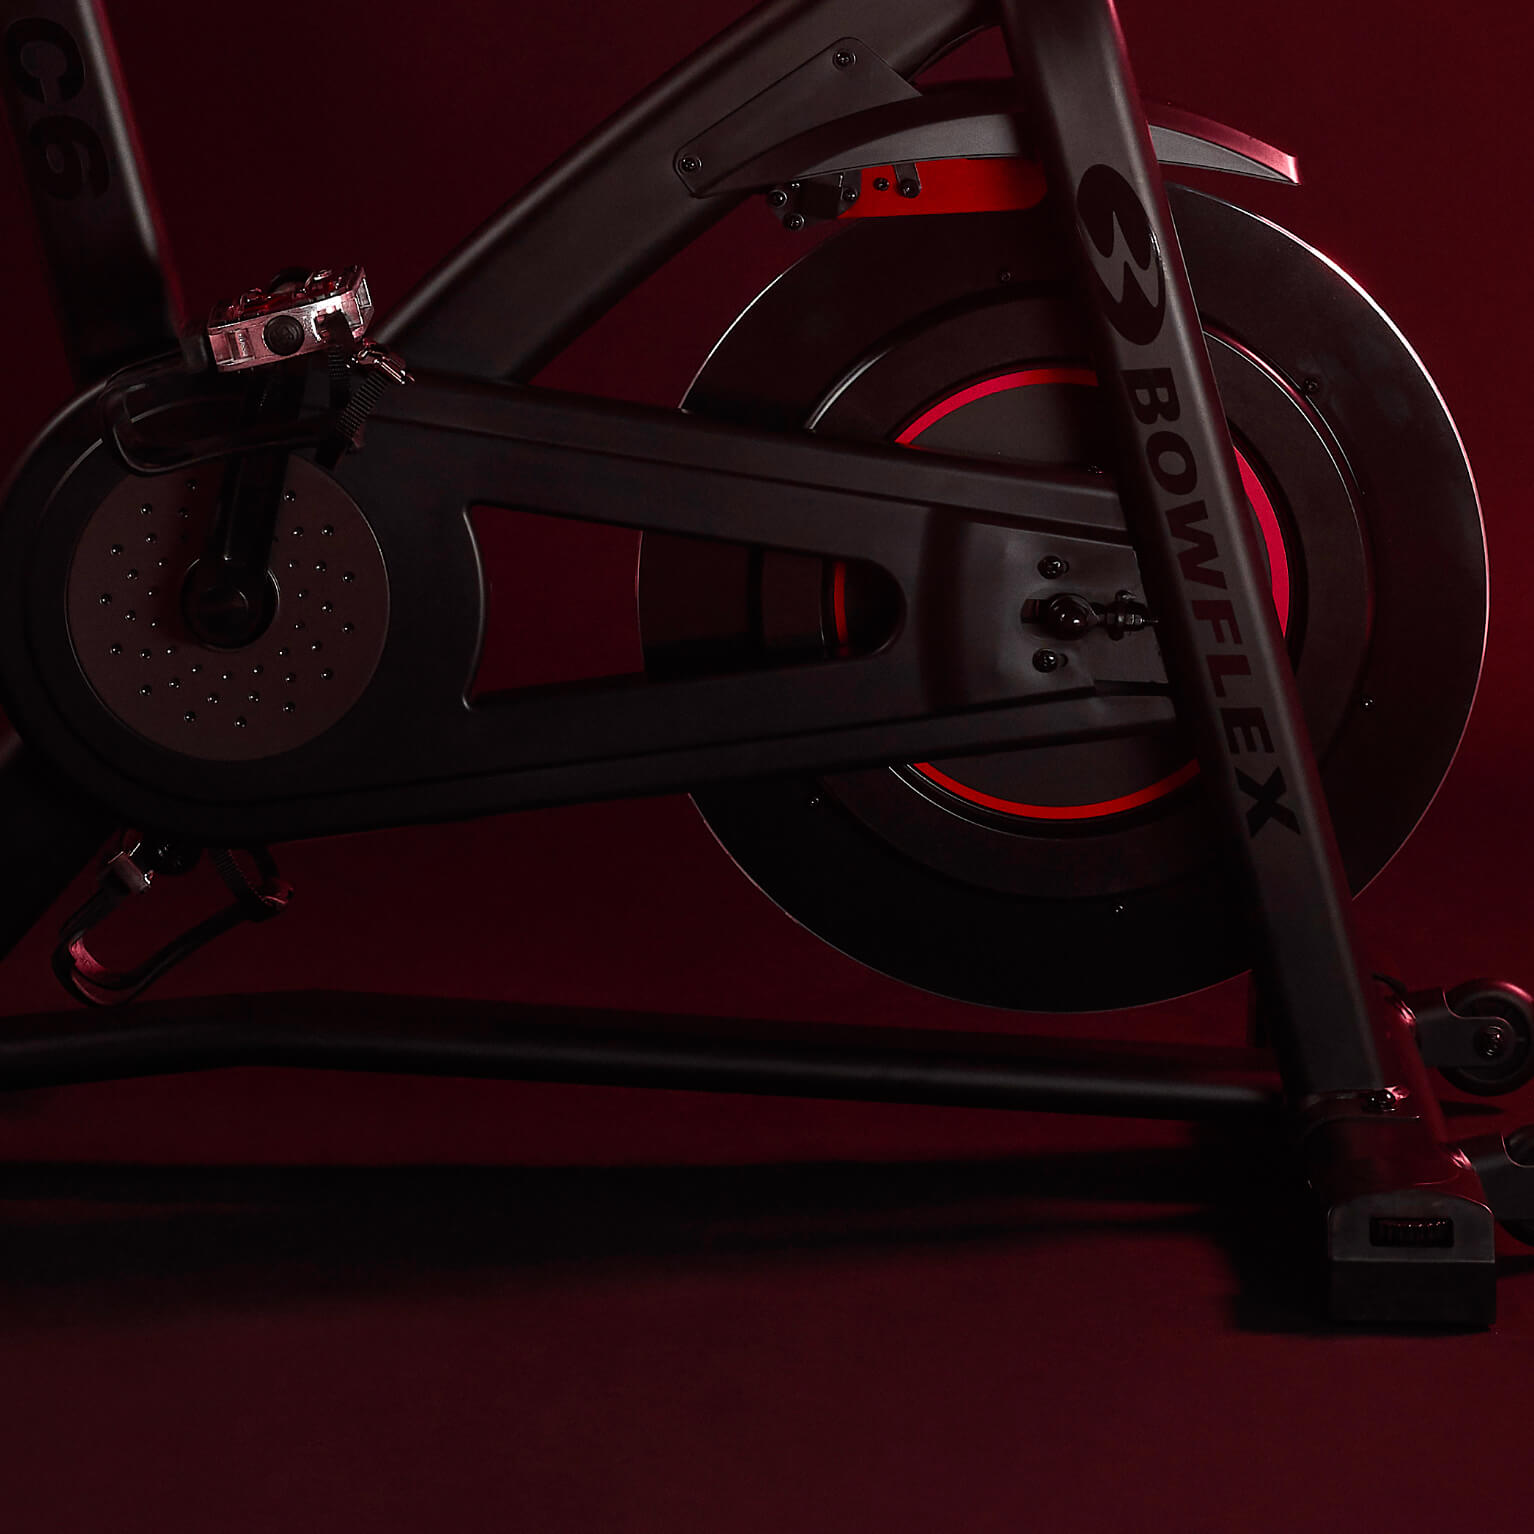 A Bowflex C6 Indoor Cycling Bike.